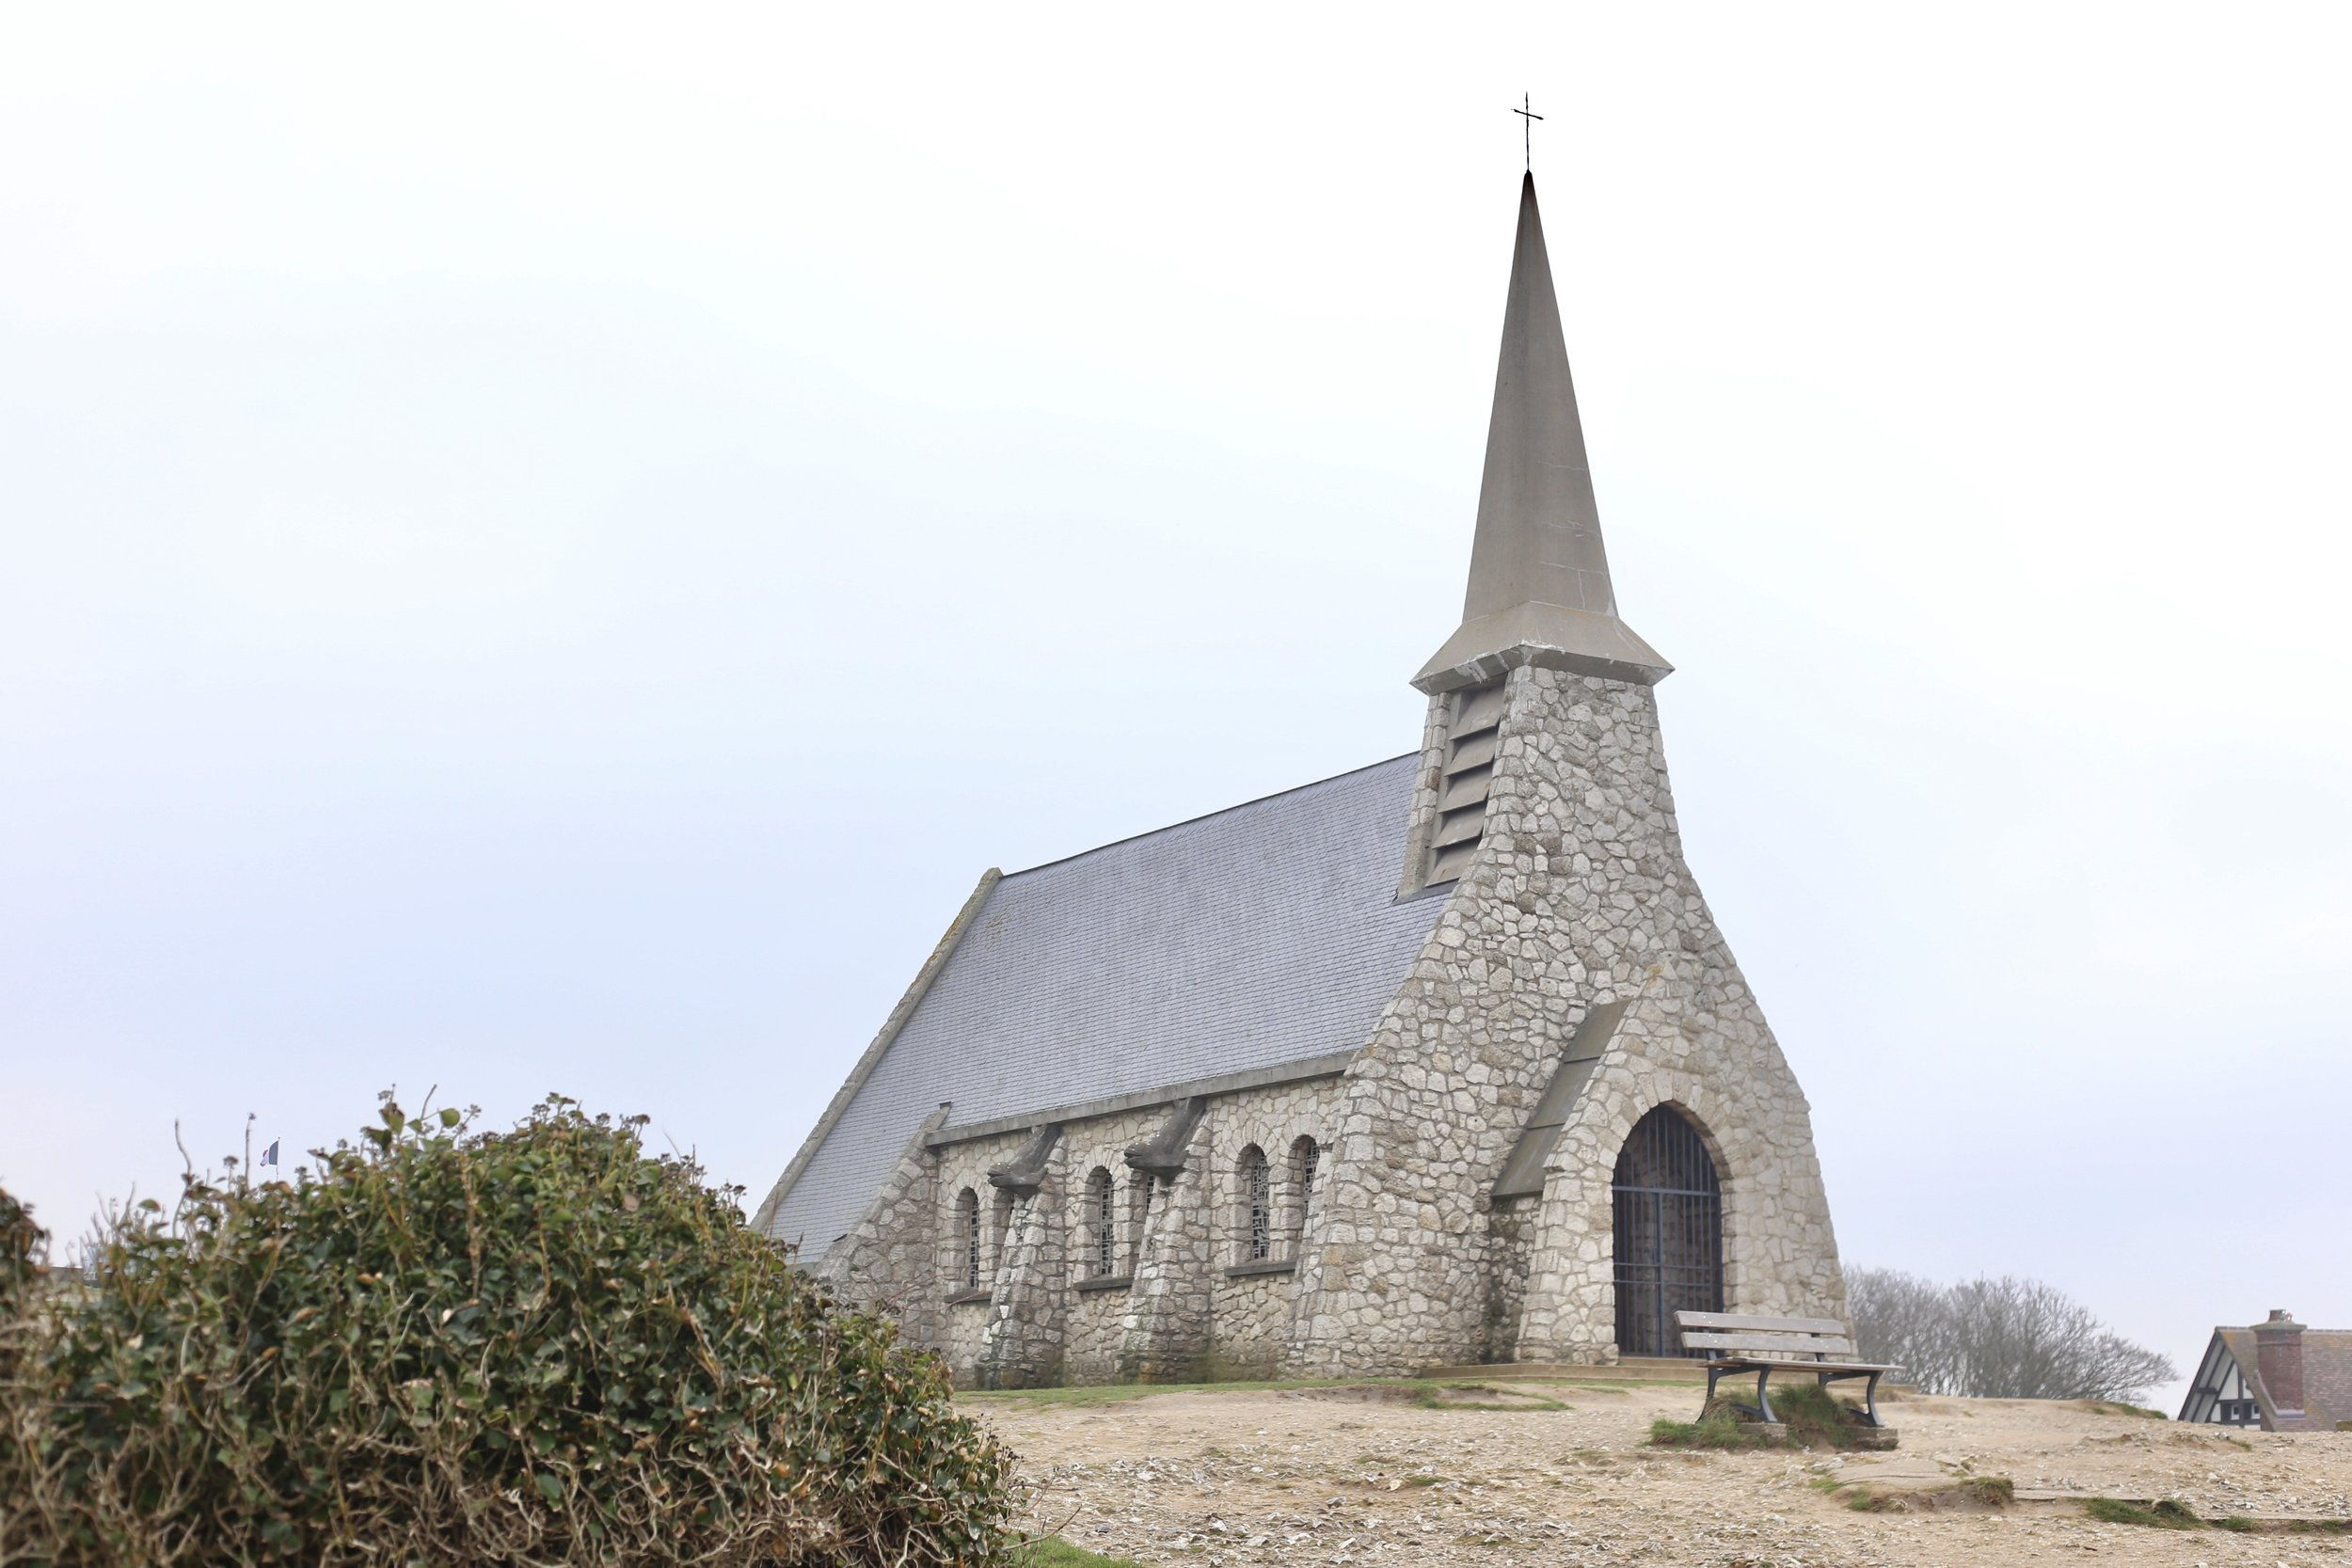 The small stone church on the cliffs of Etretat.